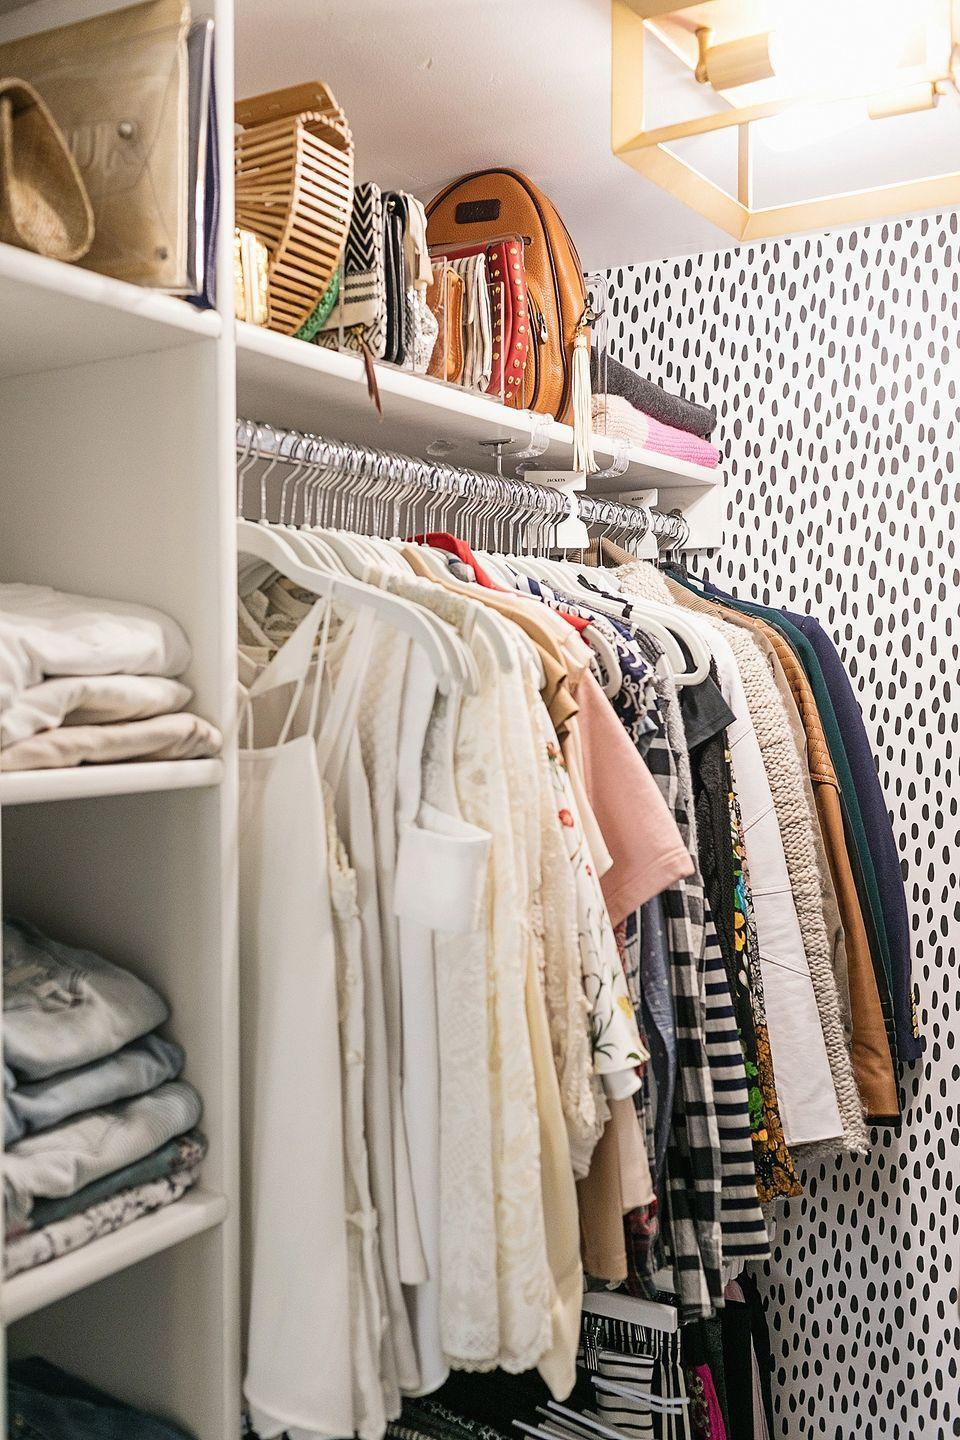 "<p>No matter how much you love an item in your closet, if you can't see it, you won't use it. File clutches and wallets in a mail organizer to keep them on display and within easy reach. (Storing them upright will also help them retain their shape.)</p><p>See more at <a href=""https://dianaelizabethblog.com/reveal-updated-tiny-closet-efficient-makeover-blogger-closet/"" rel=""nofollow noopener"" target=""_blank"" data-ylk=""slk:Diana Elizabeth"" class=""link rapid-noclick-resp"">Diana Elizabeth</a>. </p><p><a class=""link rapid-noclick-resp"" href=""https://www.amazon.com/Wikkiv-Organizer-Practical-Desktop-Sorter/dp/B07DWTNNHR/ref=sr_1_10?tag=syn-yahoo-20&ascsubtag=%5Bartid%7C10072.g.29994972%5Bsrc%7Cyahoo-us"" rel=""nofollow noopener"" target=""_blank"" data-ylk=""slk:SHOP ORGANIZERS"">SHOP ORGANIZERS</a></p>"